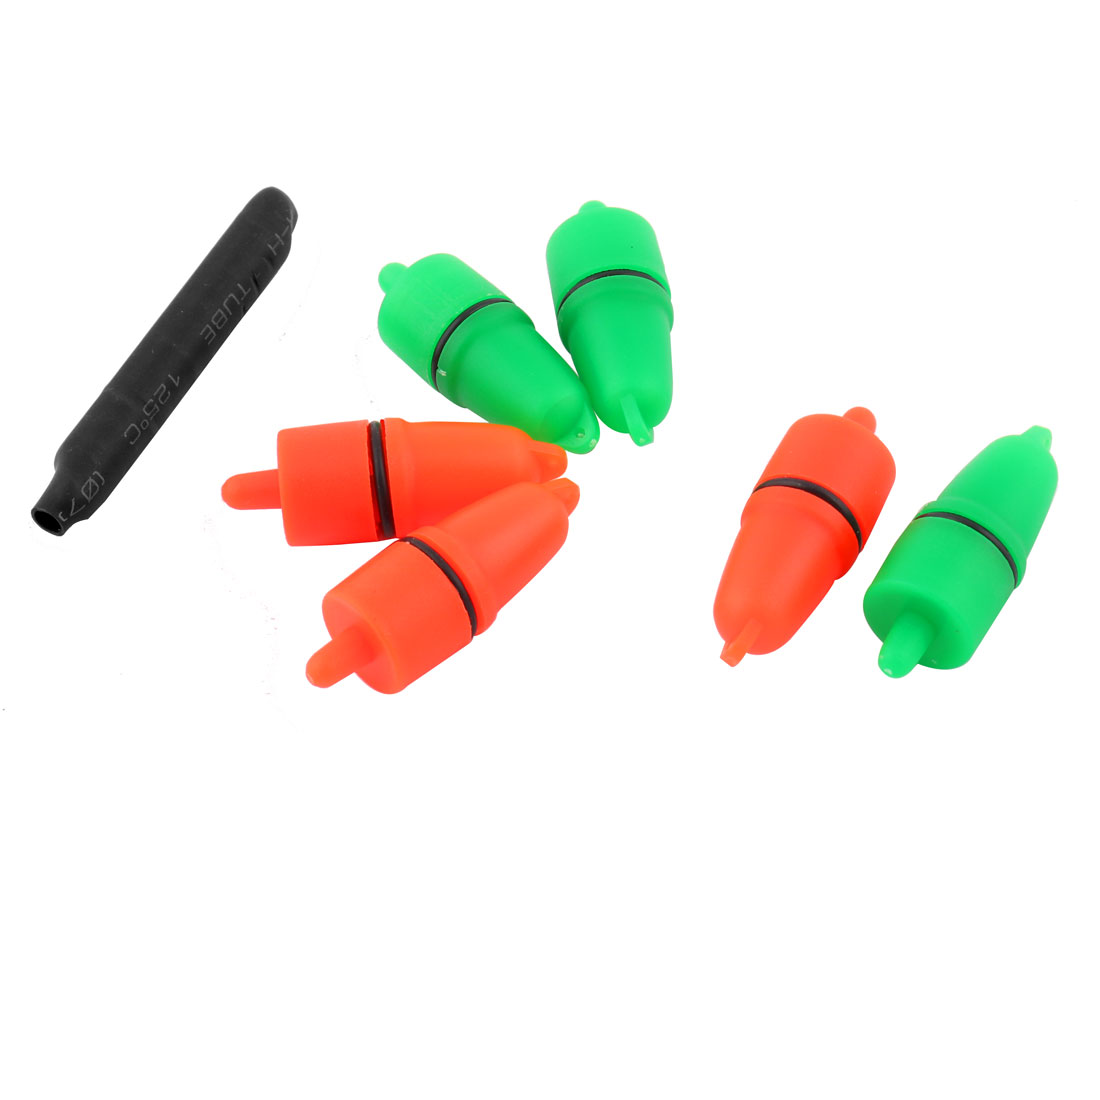 Click here to buy Battery Powered Warning LED Lamp Light Flashing Fishing Bobber Floats 6 Pcs by Unique-Bargains.